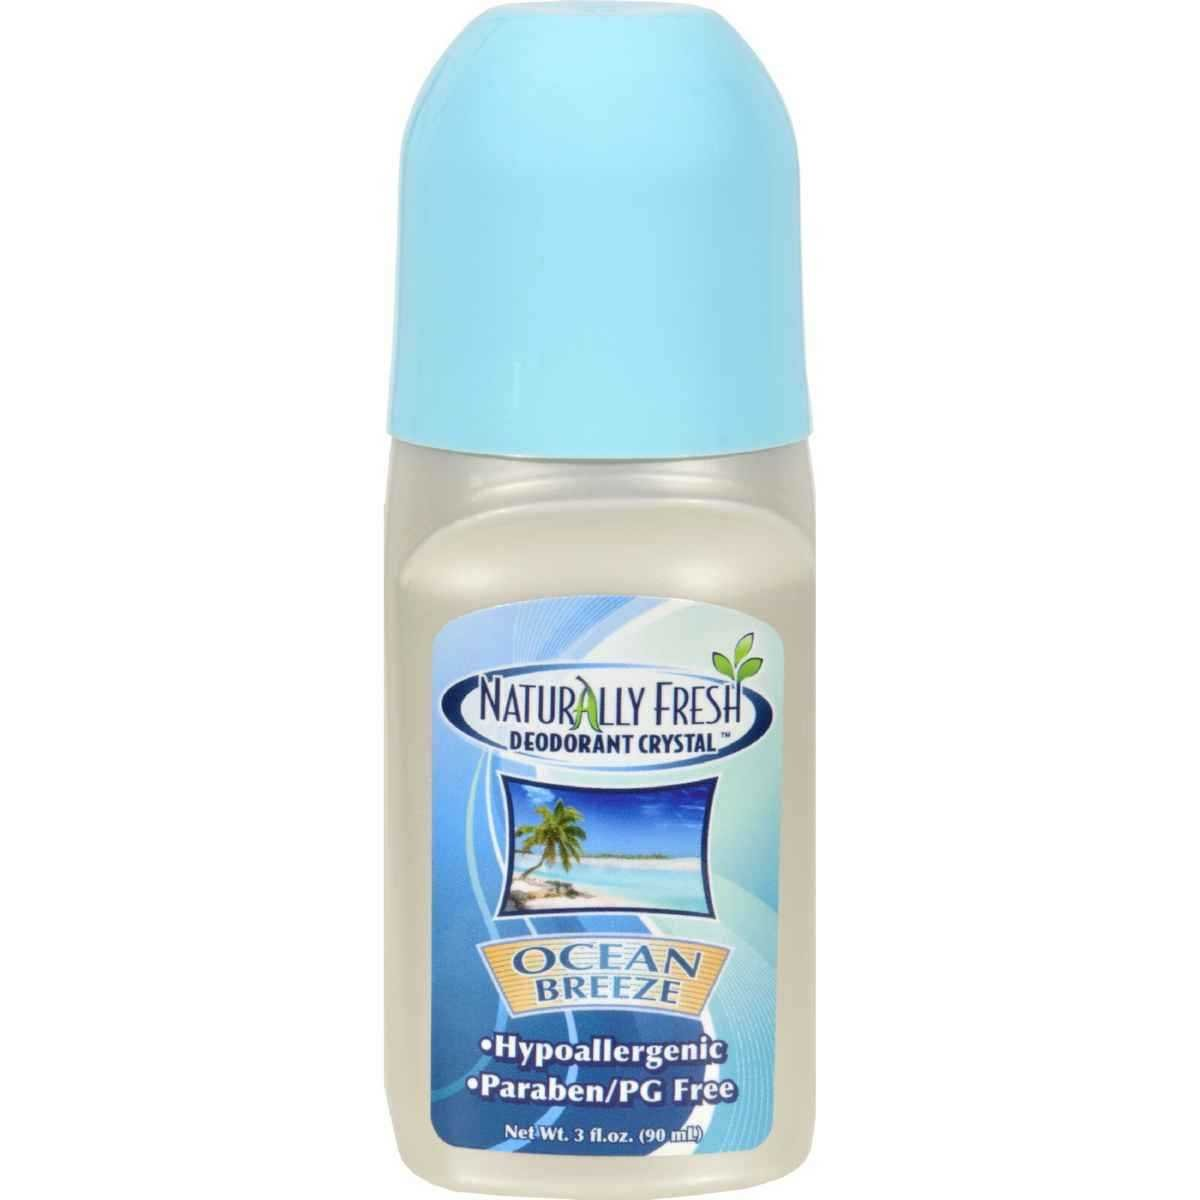 Roll-On Deodorant Ocean Breeze Naturally Fresh 3 fl oz Roll-On